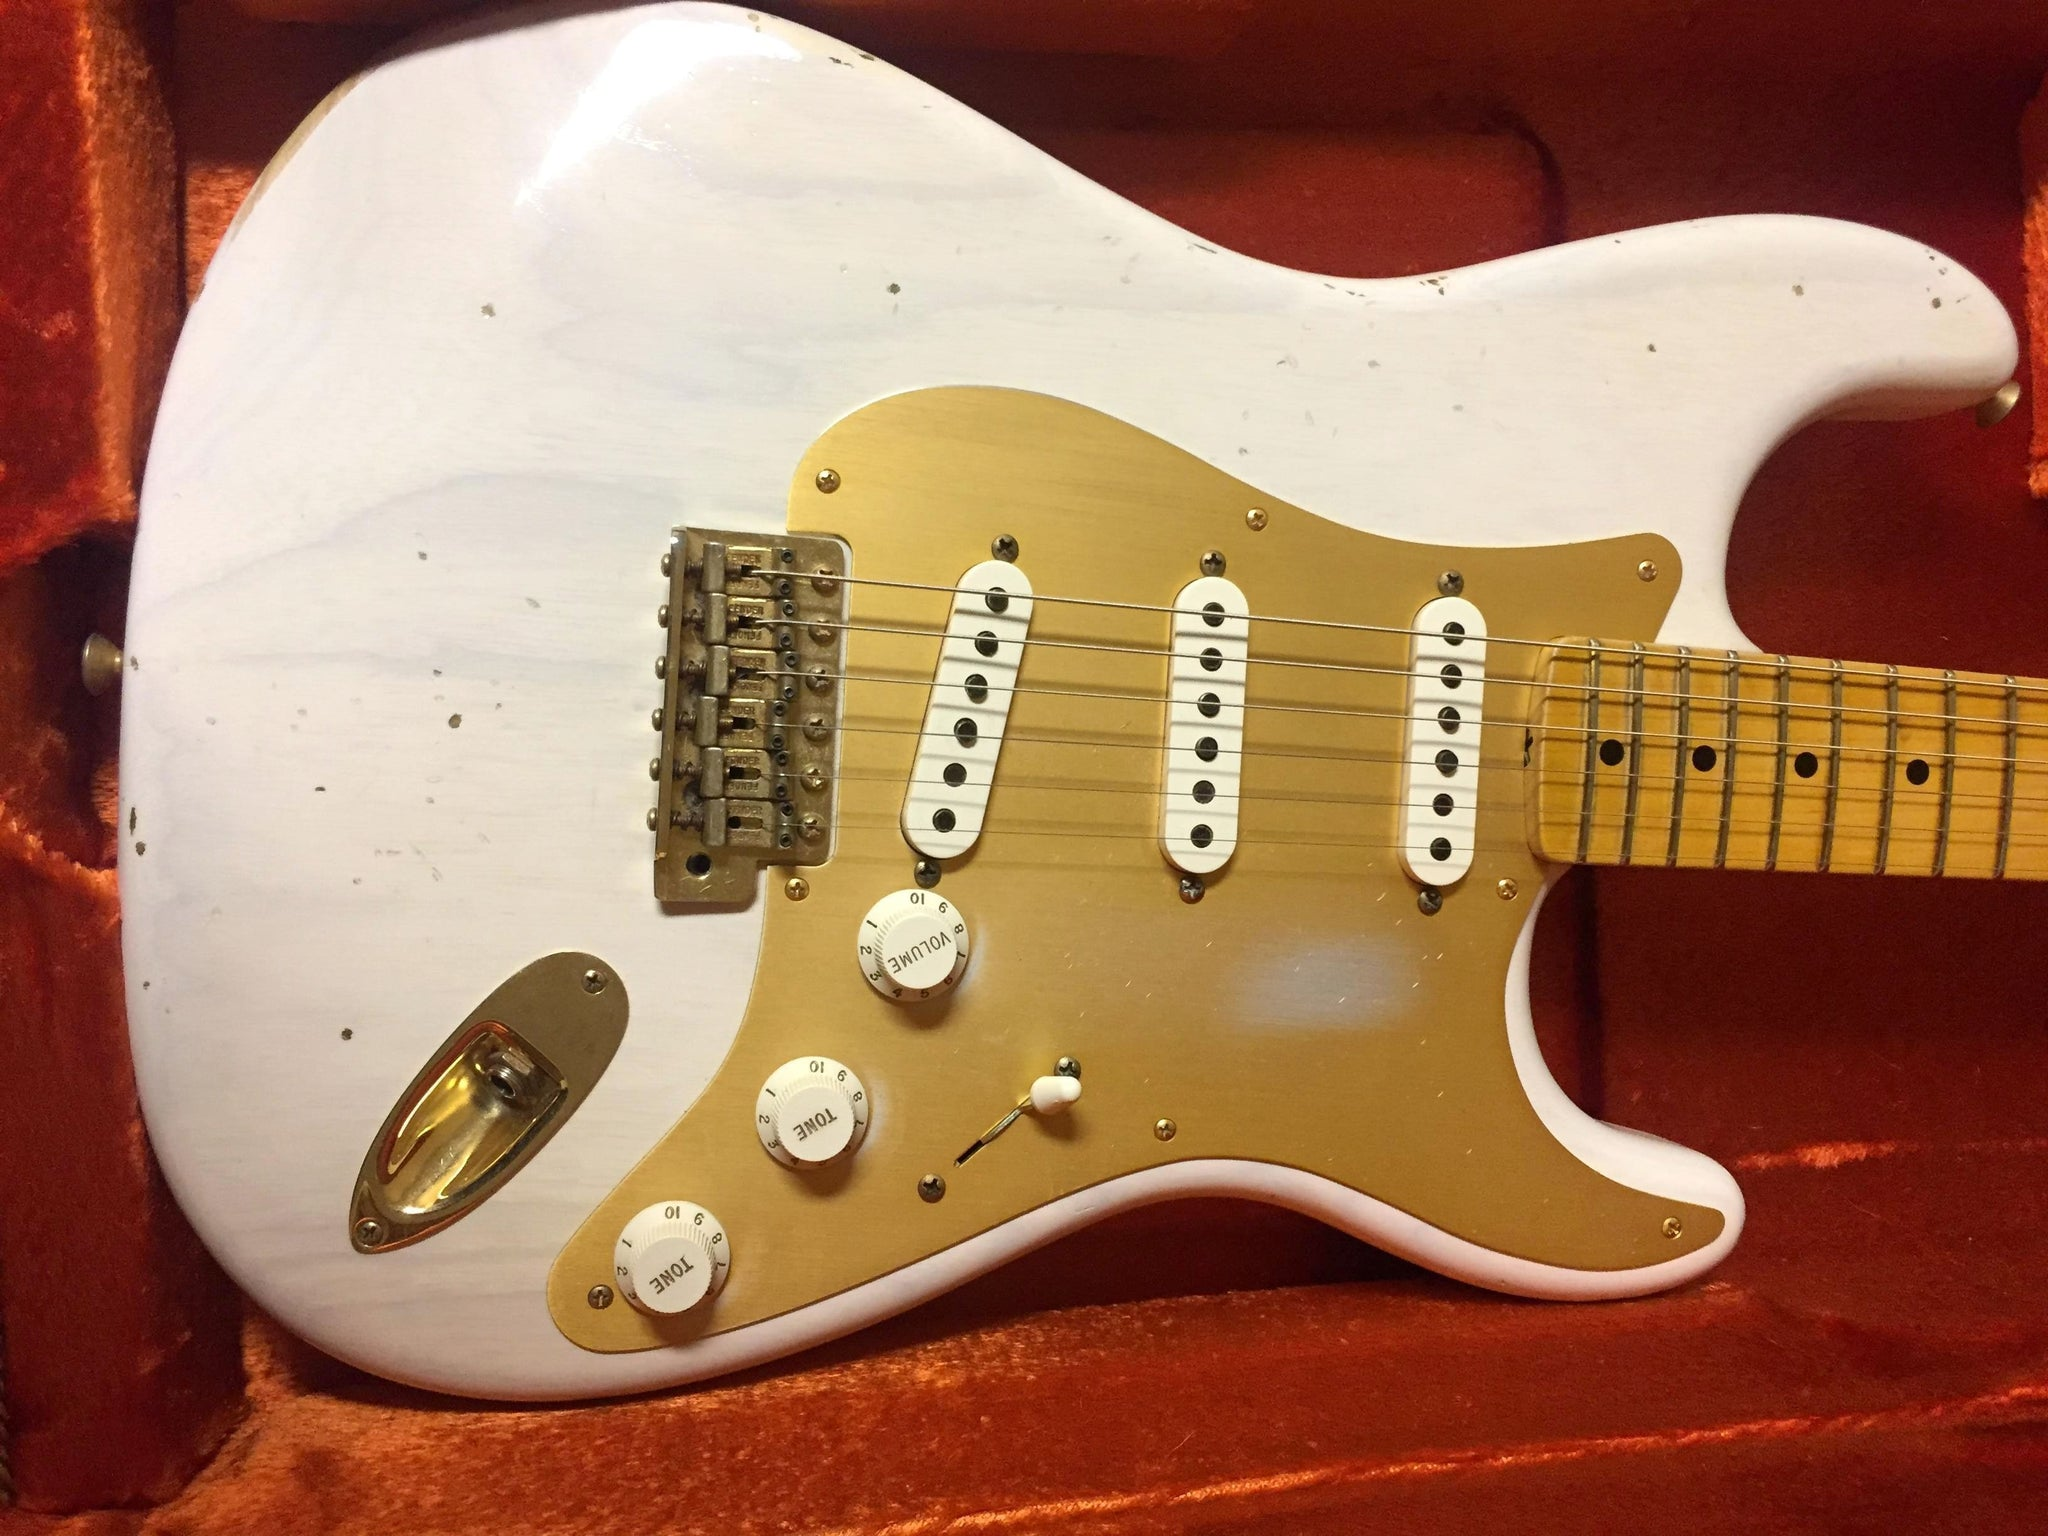 Custom Shop Vintage Reli'd White / Blonde Stratocaster with Anodized Pickguard - SOLD